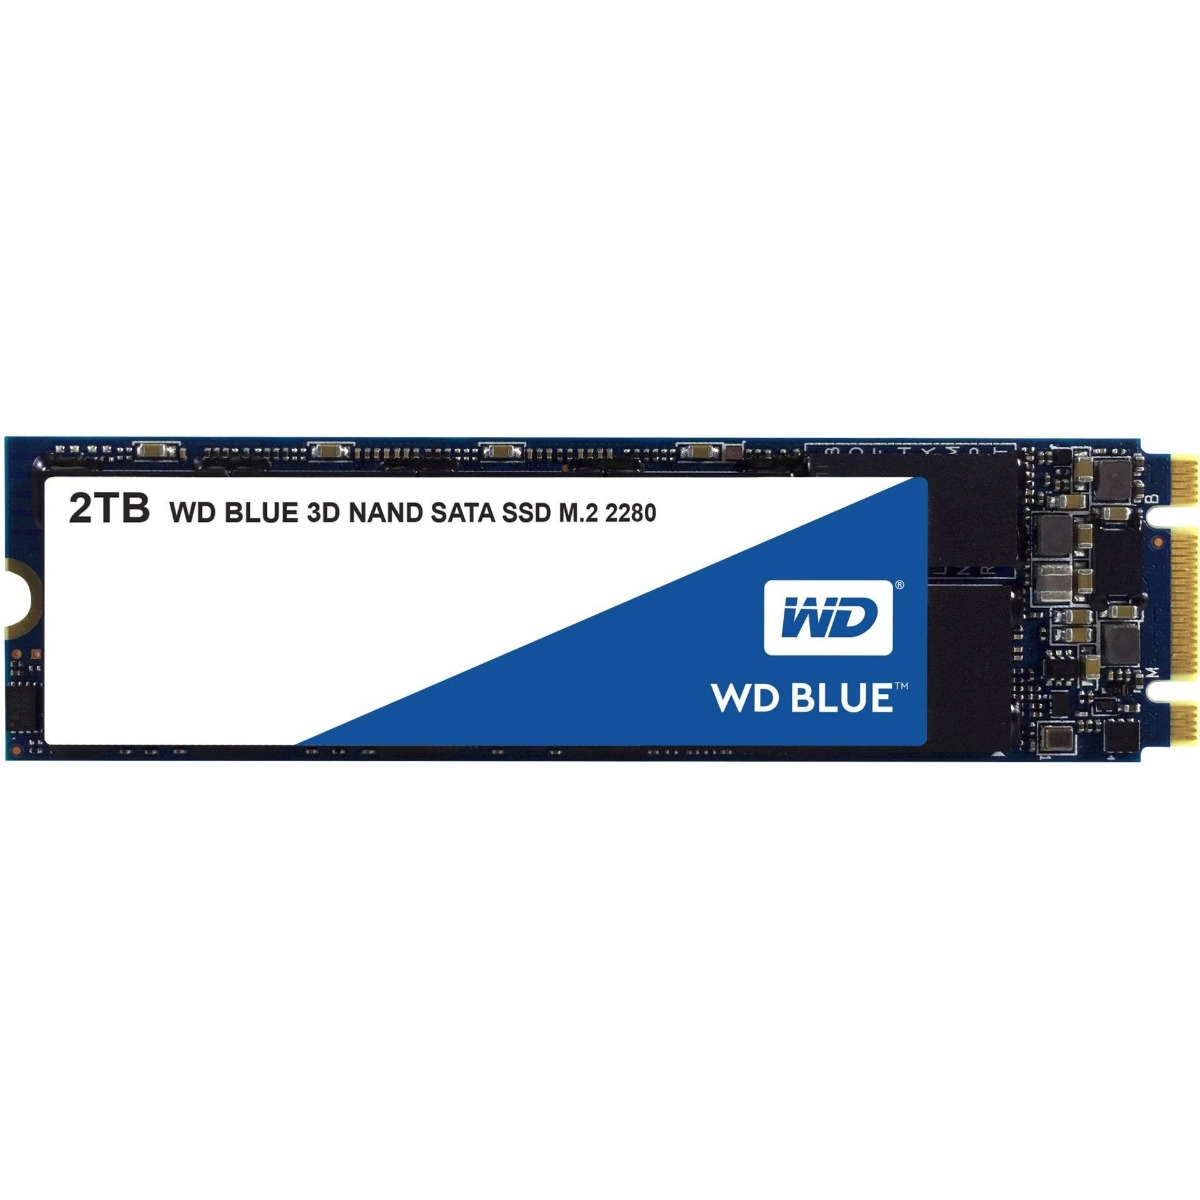 Western Digital SSD, Blue, 2TB, M2 2280, SATA3 6 GB/s, R/W speed: up to 560MBs/530MBs